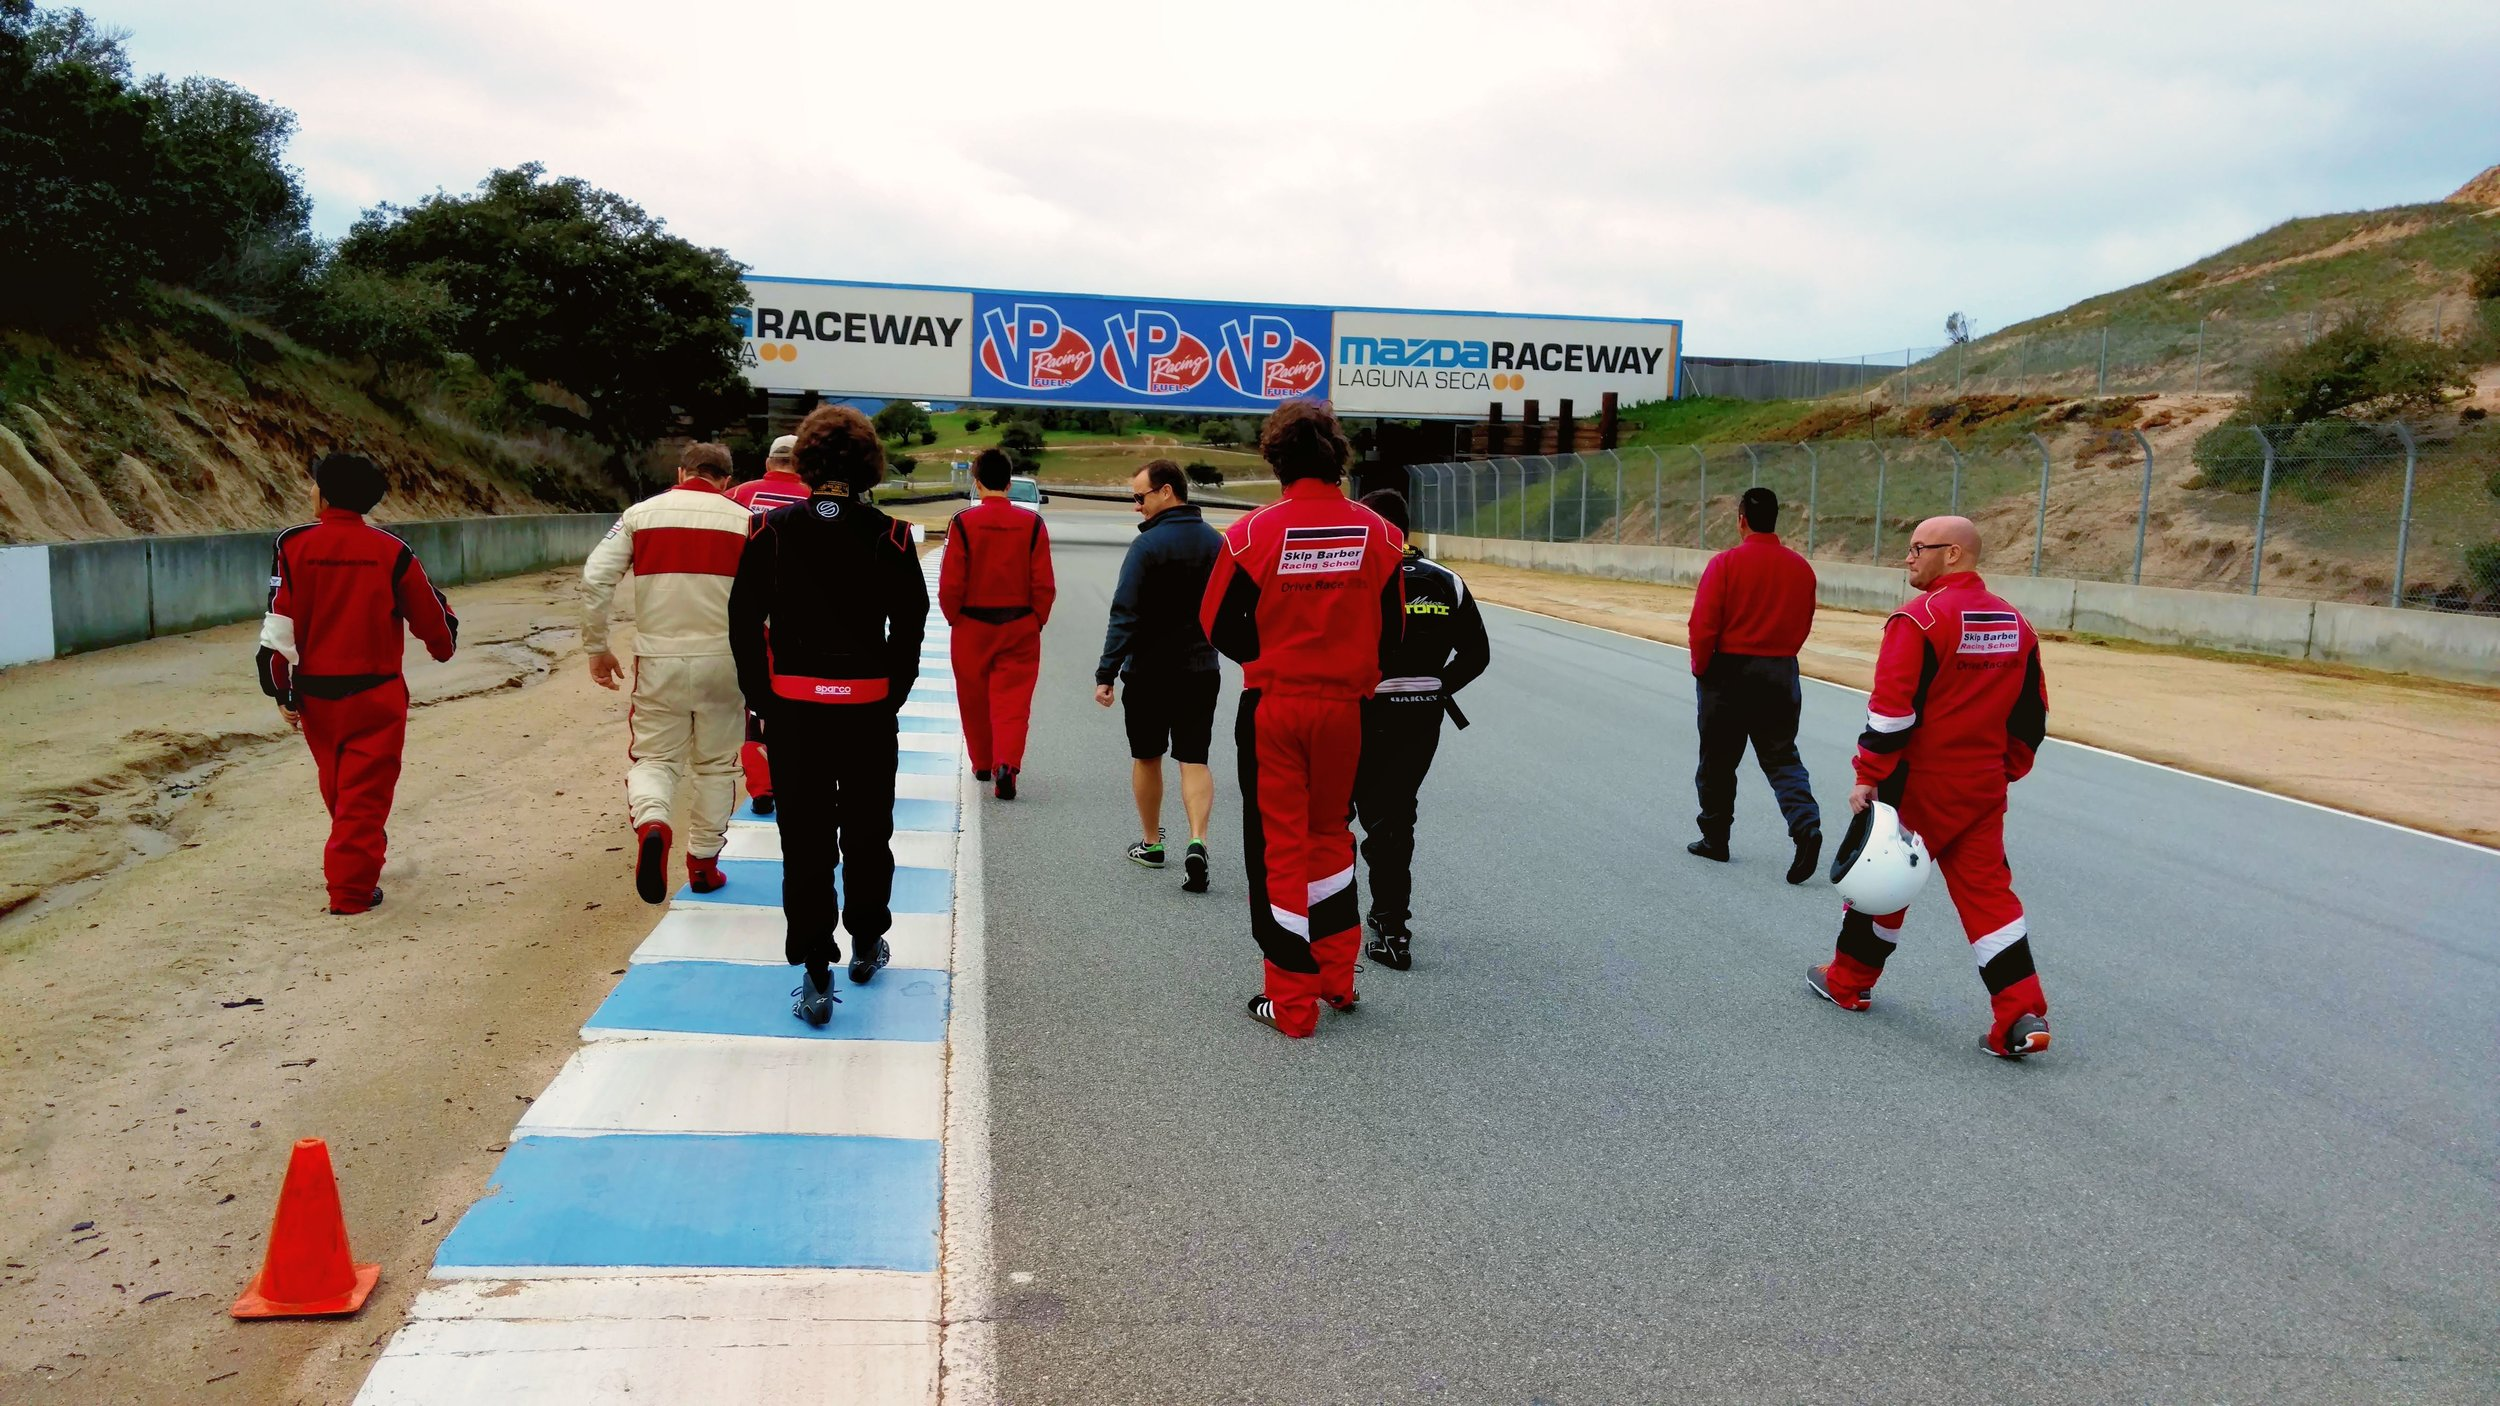 Walking the track to get to know the turns and obstacles